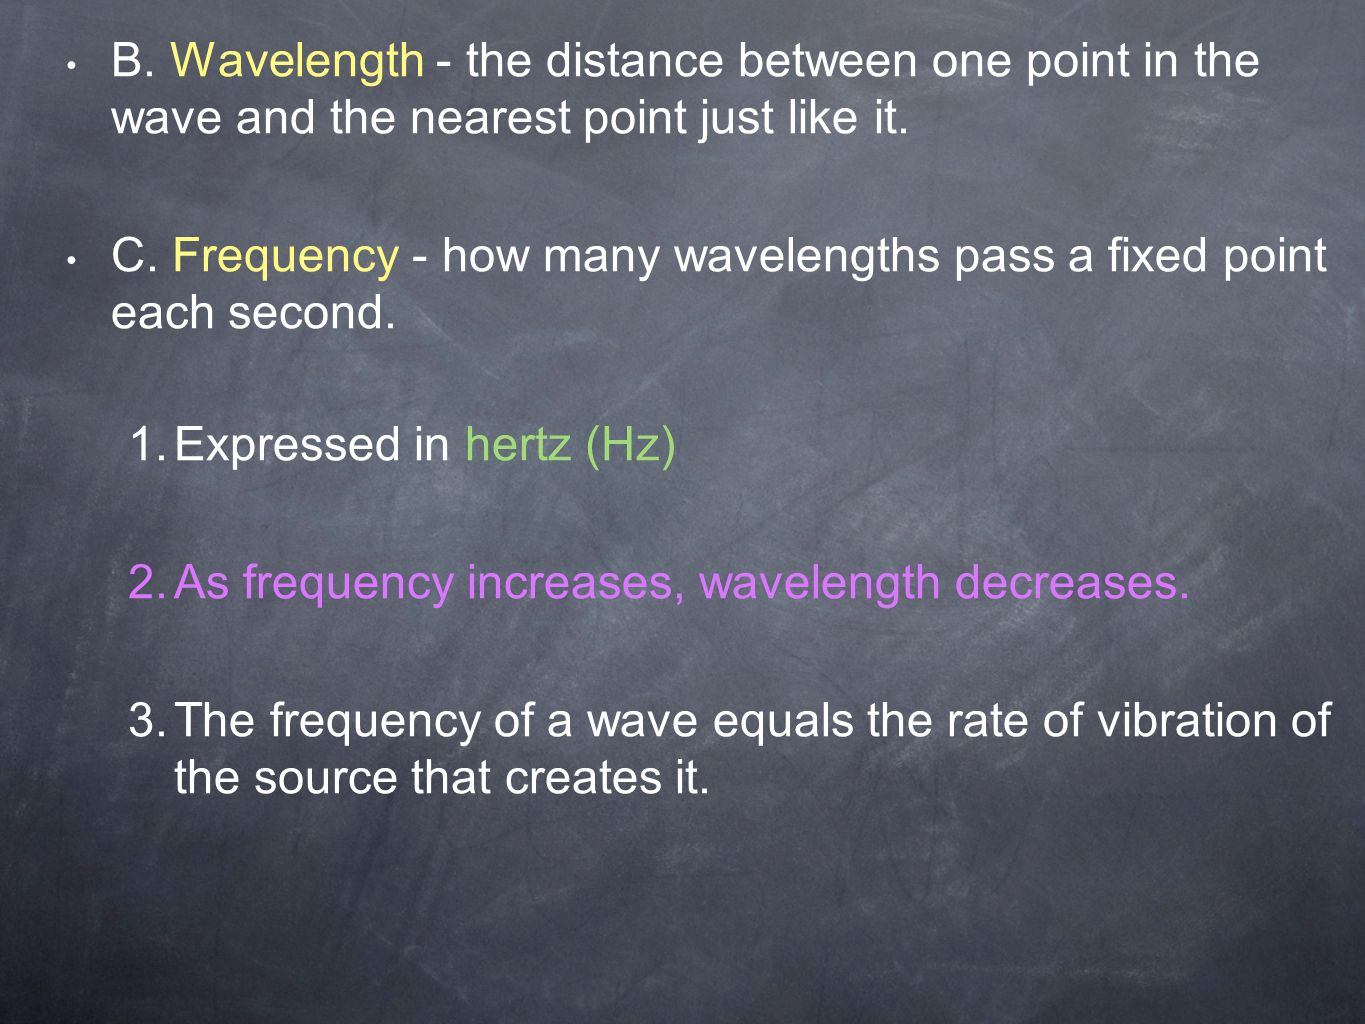 B. Wavelength - the distance between one point in the wave and the nearest point just like it.